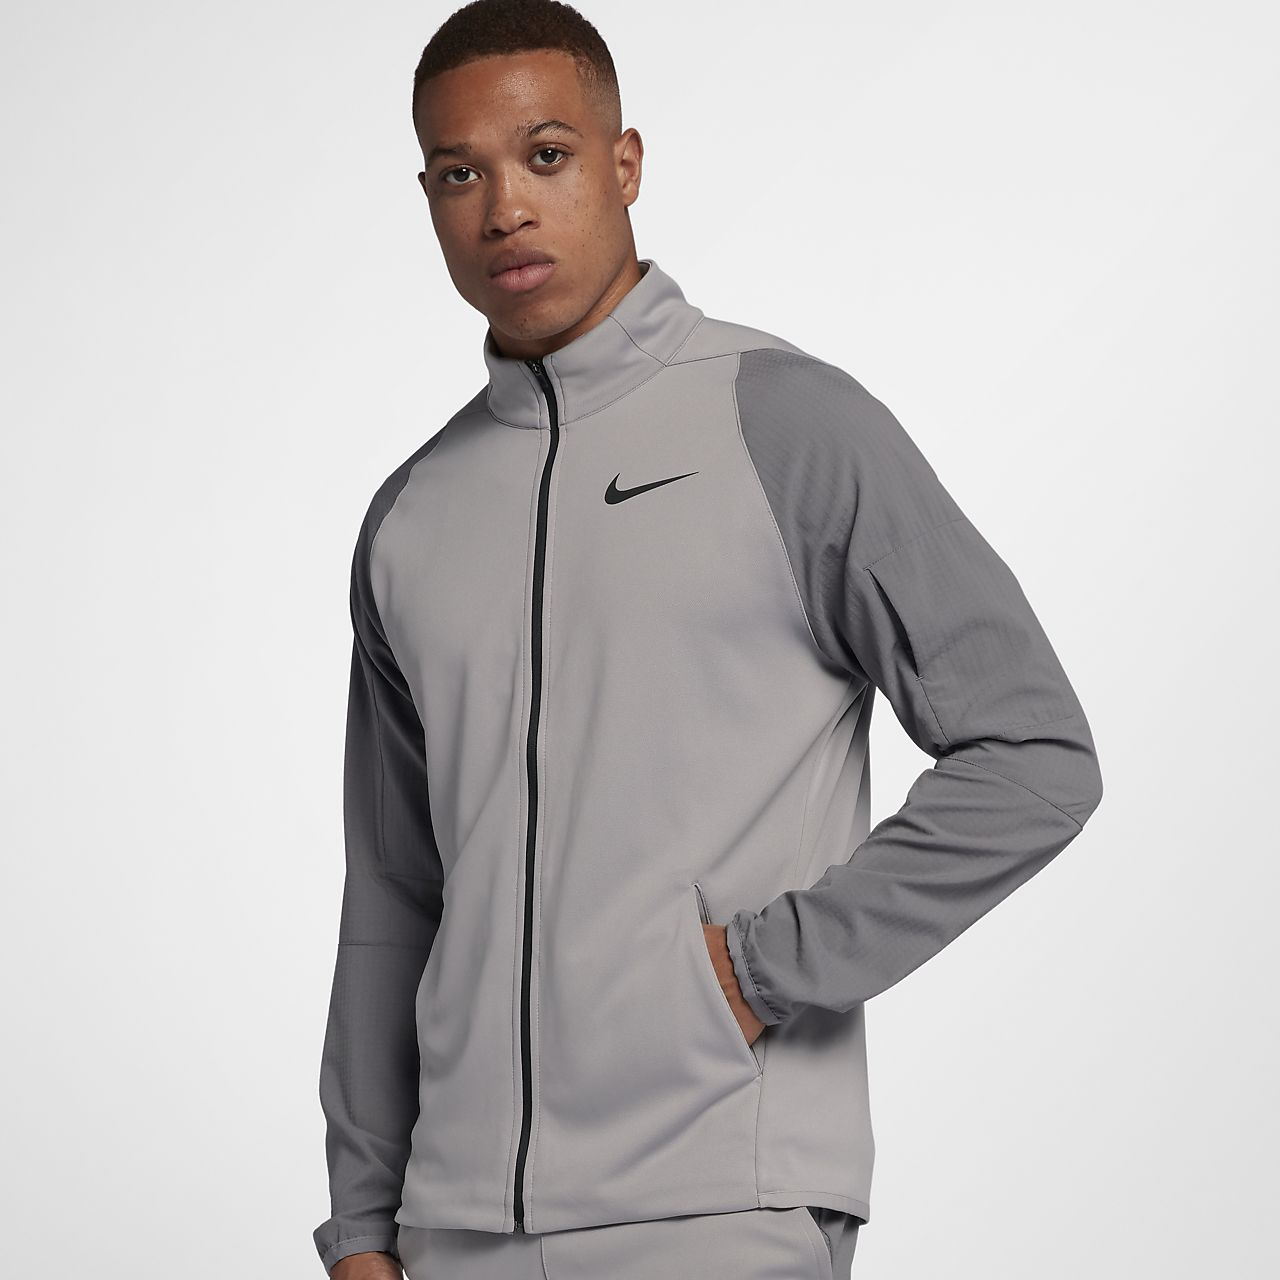 029362fd Nike Dri-FIT Men's Training Jacket. Nike.com